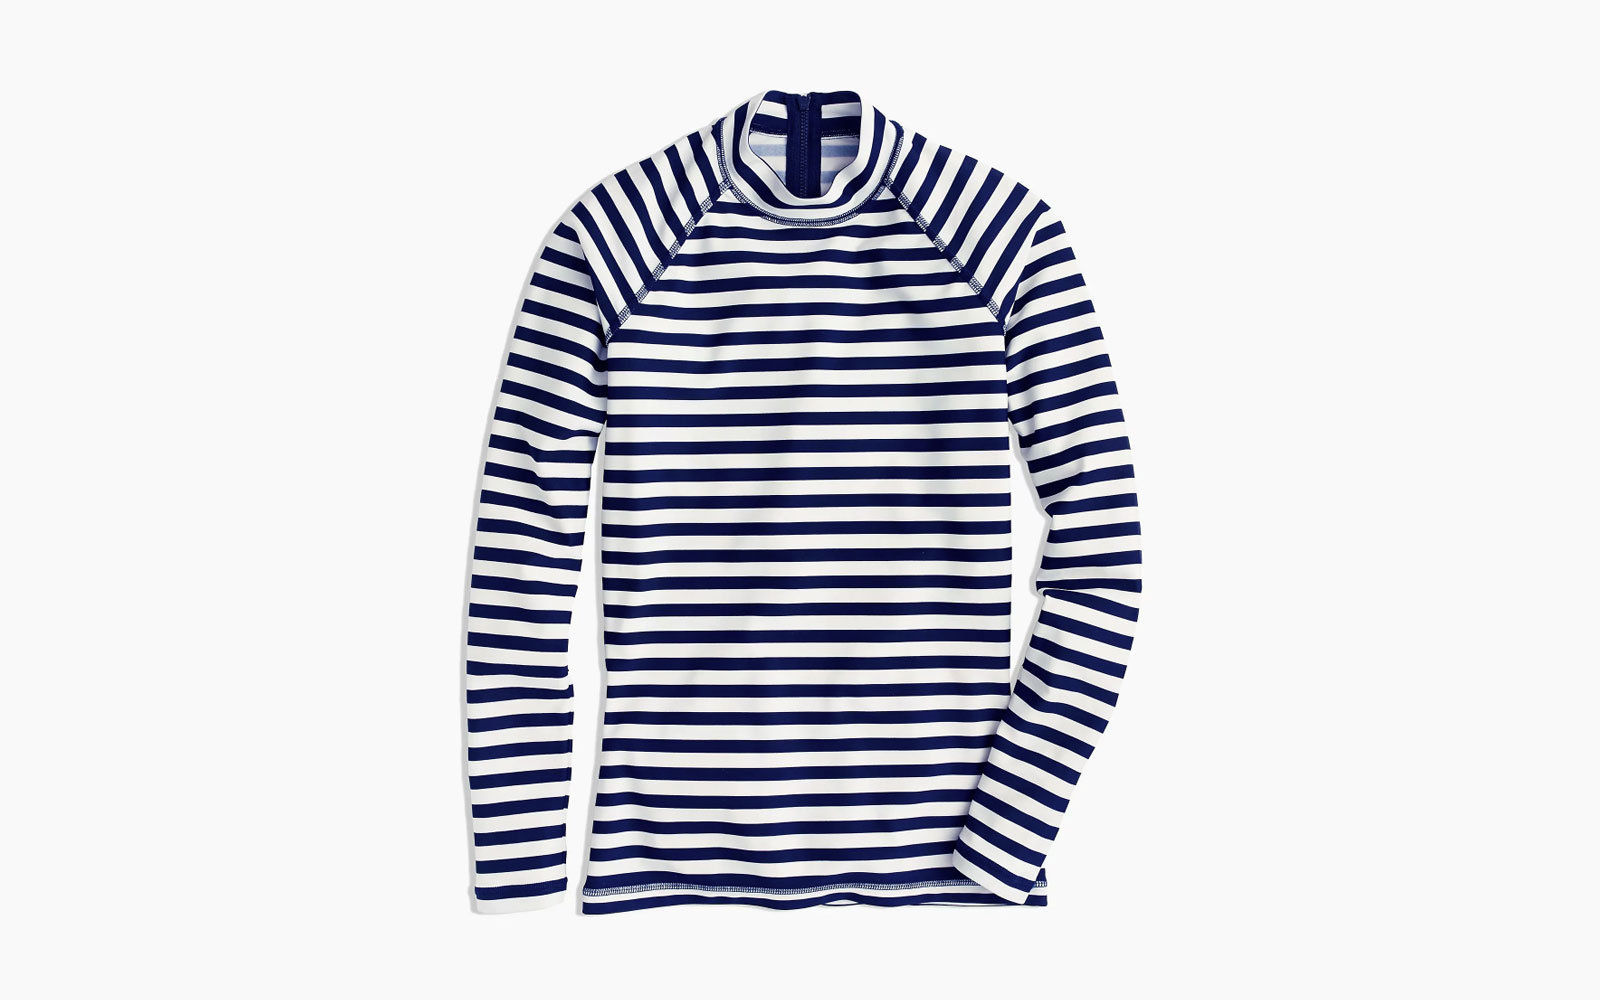 J.Crew Long-sleeve Rash Guard SPF 50